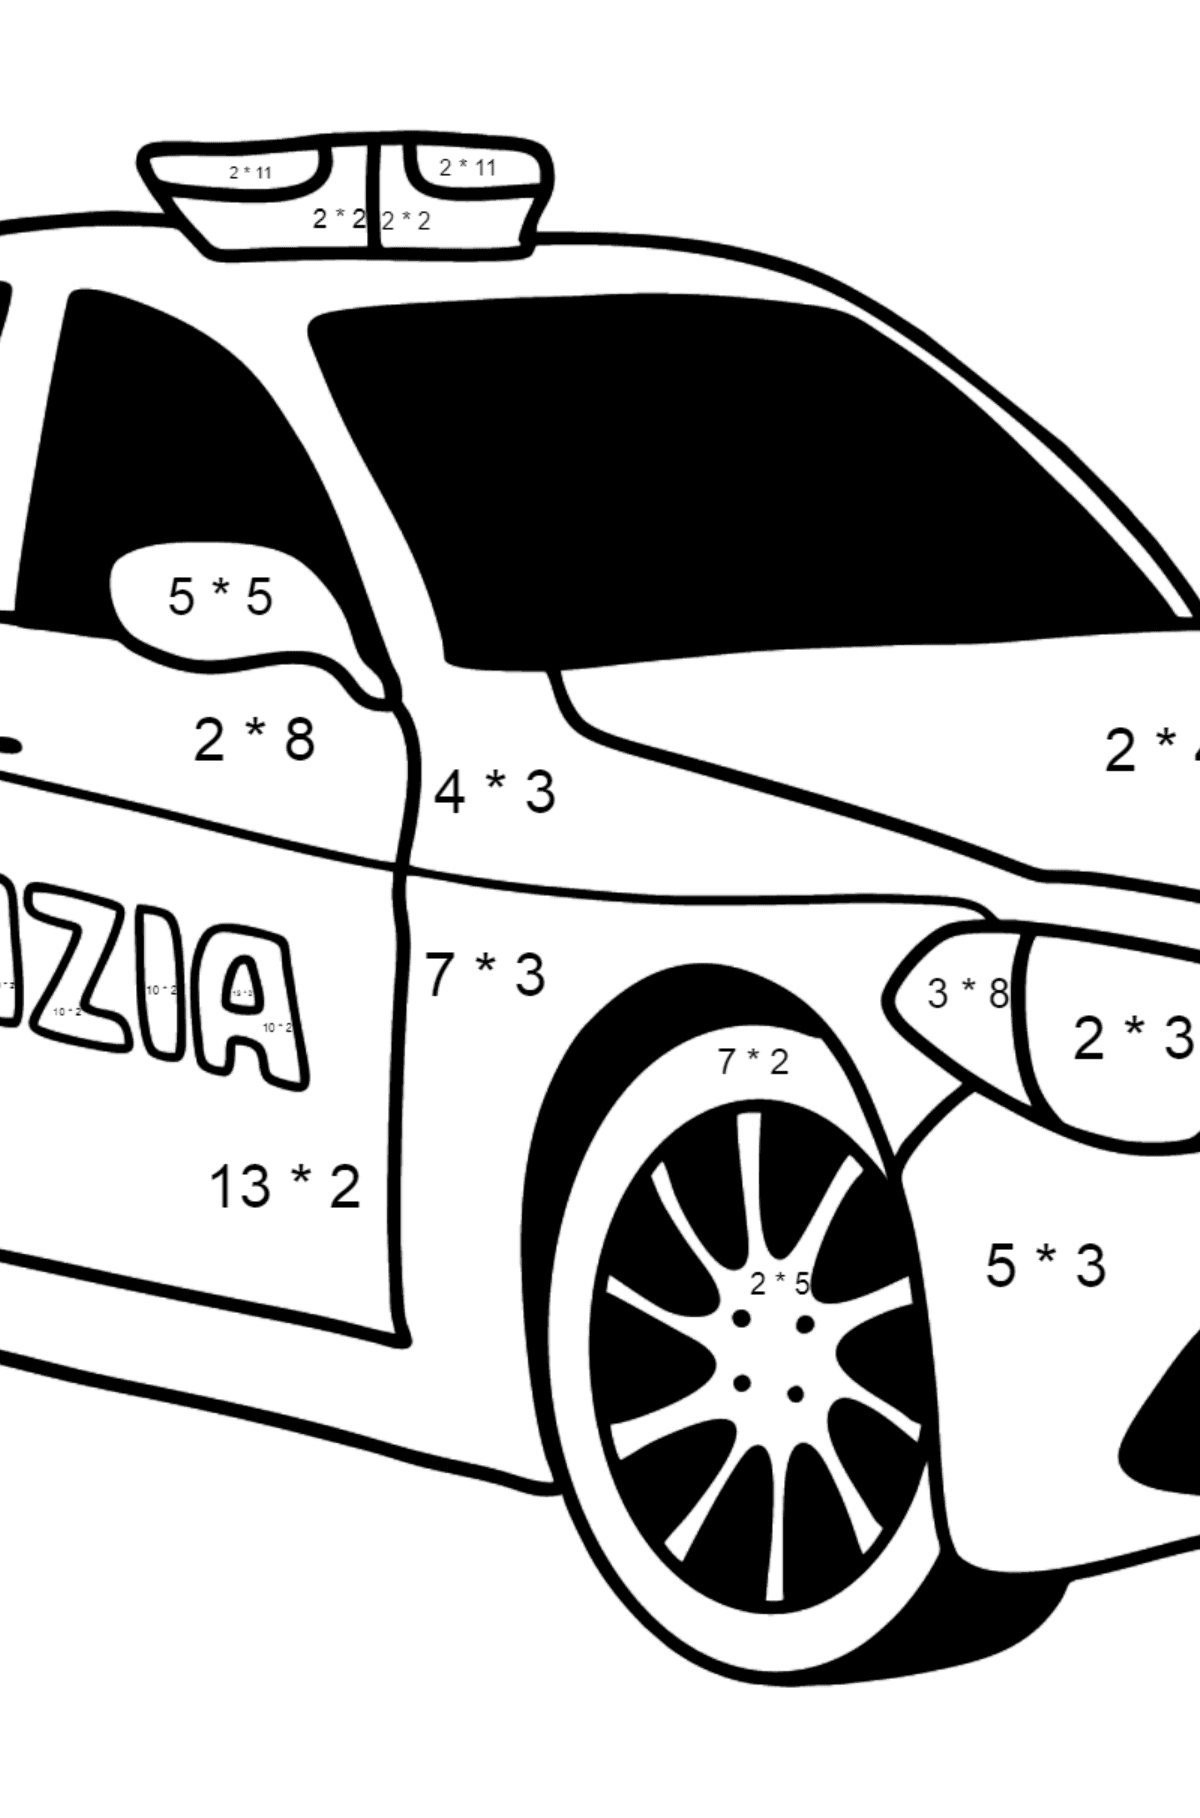 Police Car in Italy coloring page - Math Coloring - Multiplication for Kids